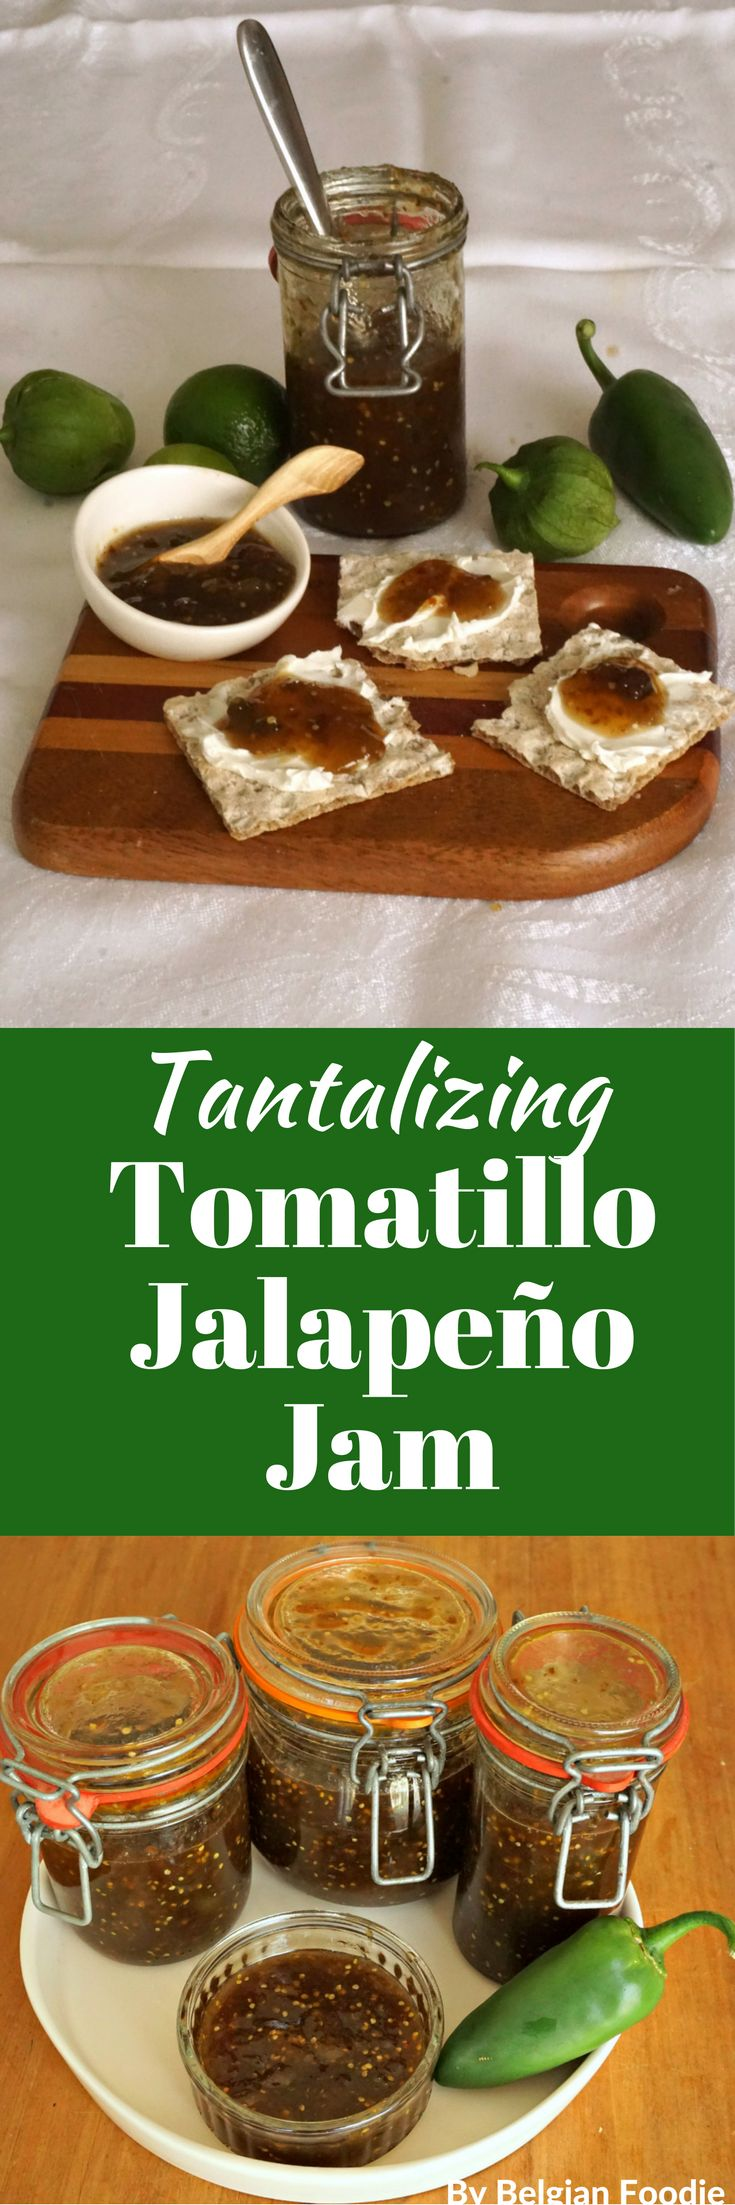 Try this Tomatillo Jalapeño Jam to turn an ordinary dish into an EXTRAORDINARY dish!